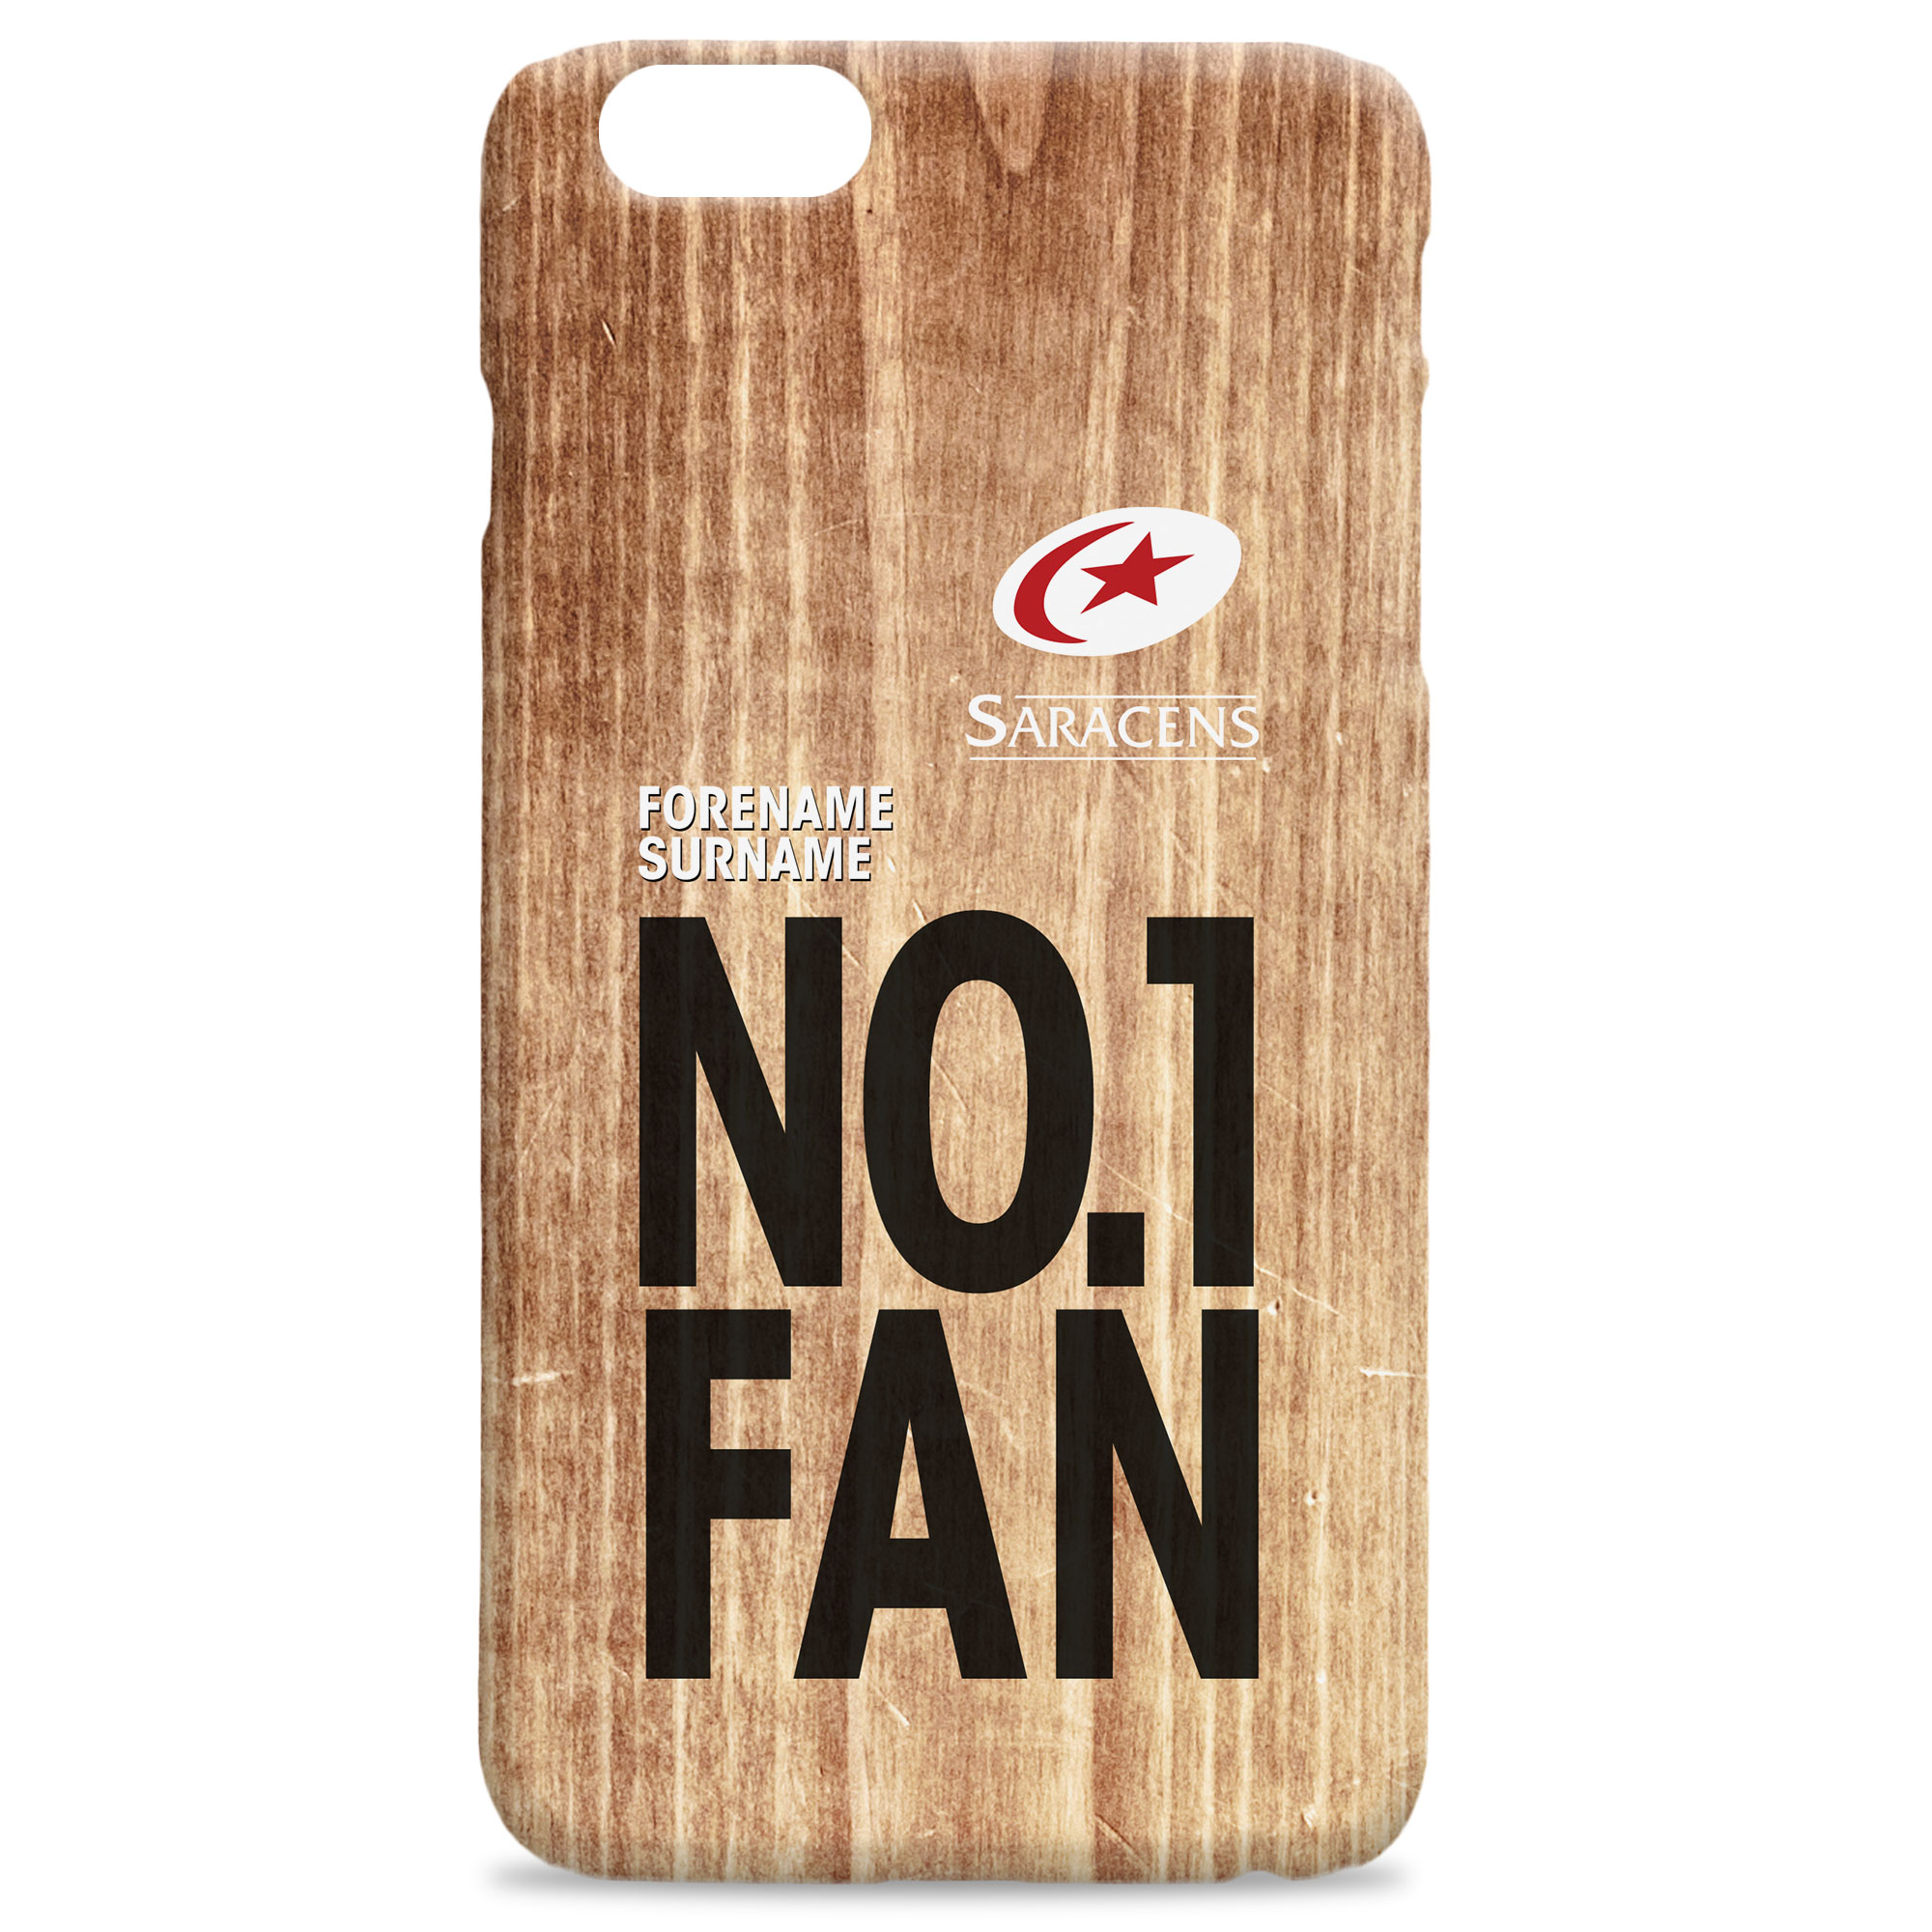 Saracens No 1 Fan Hard Back Phone Case